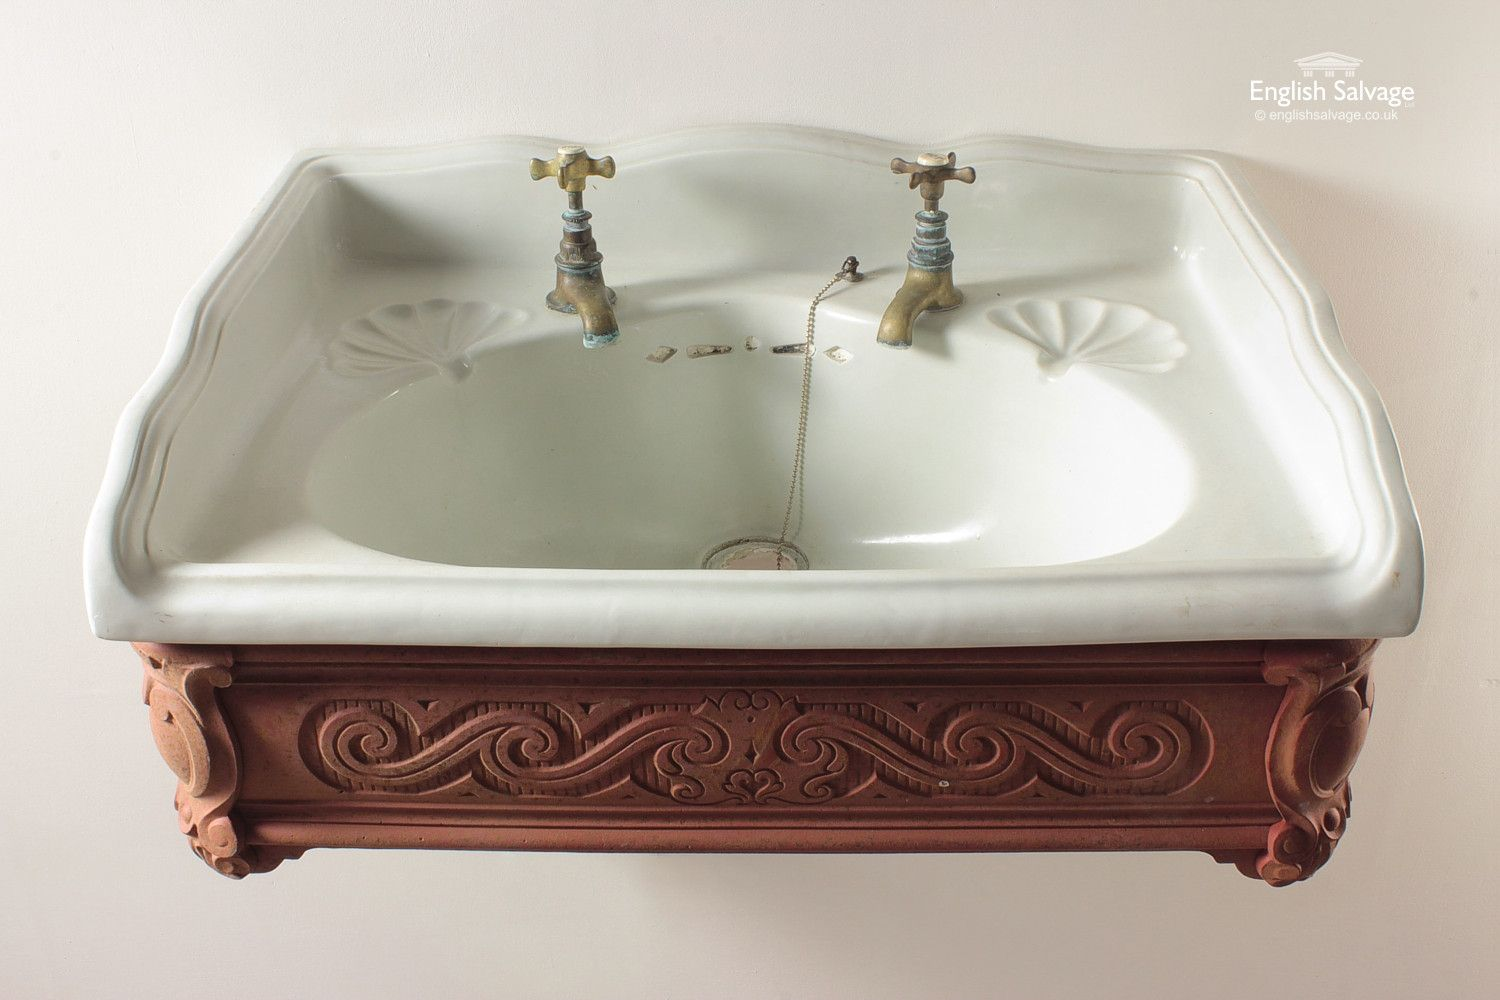 Shanks sink and stand reclaimed porcelain sinks and chrome stands - Victorian Wash Basin With Cast Bracket Cradle